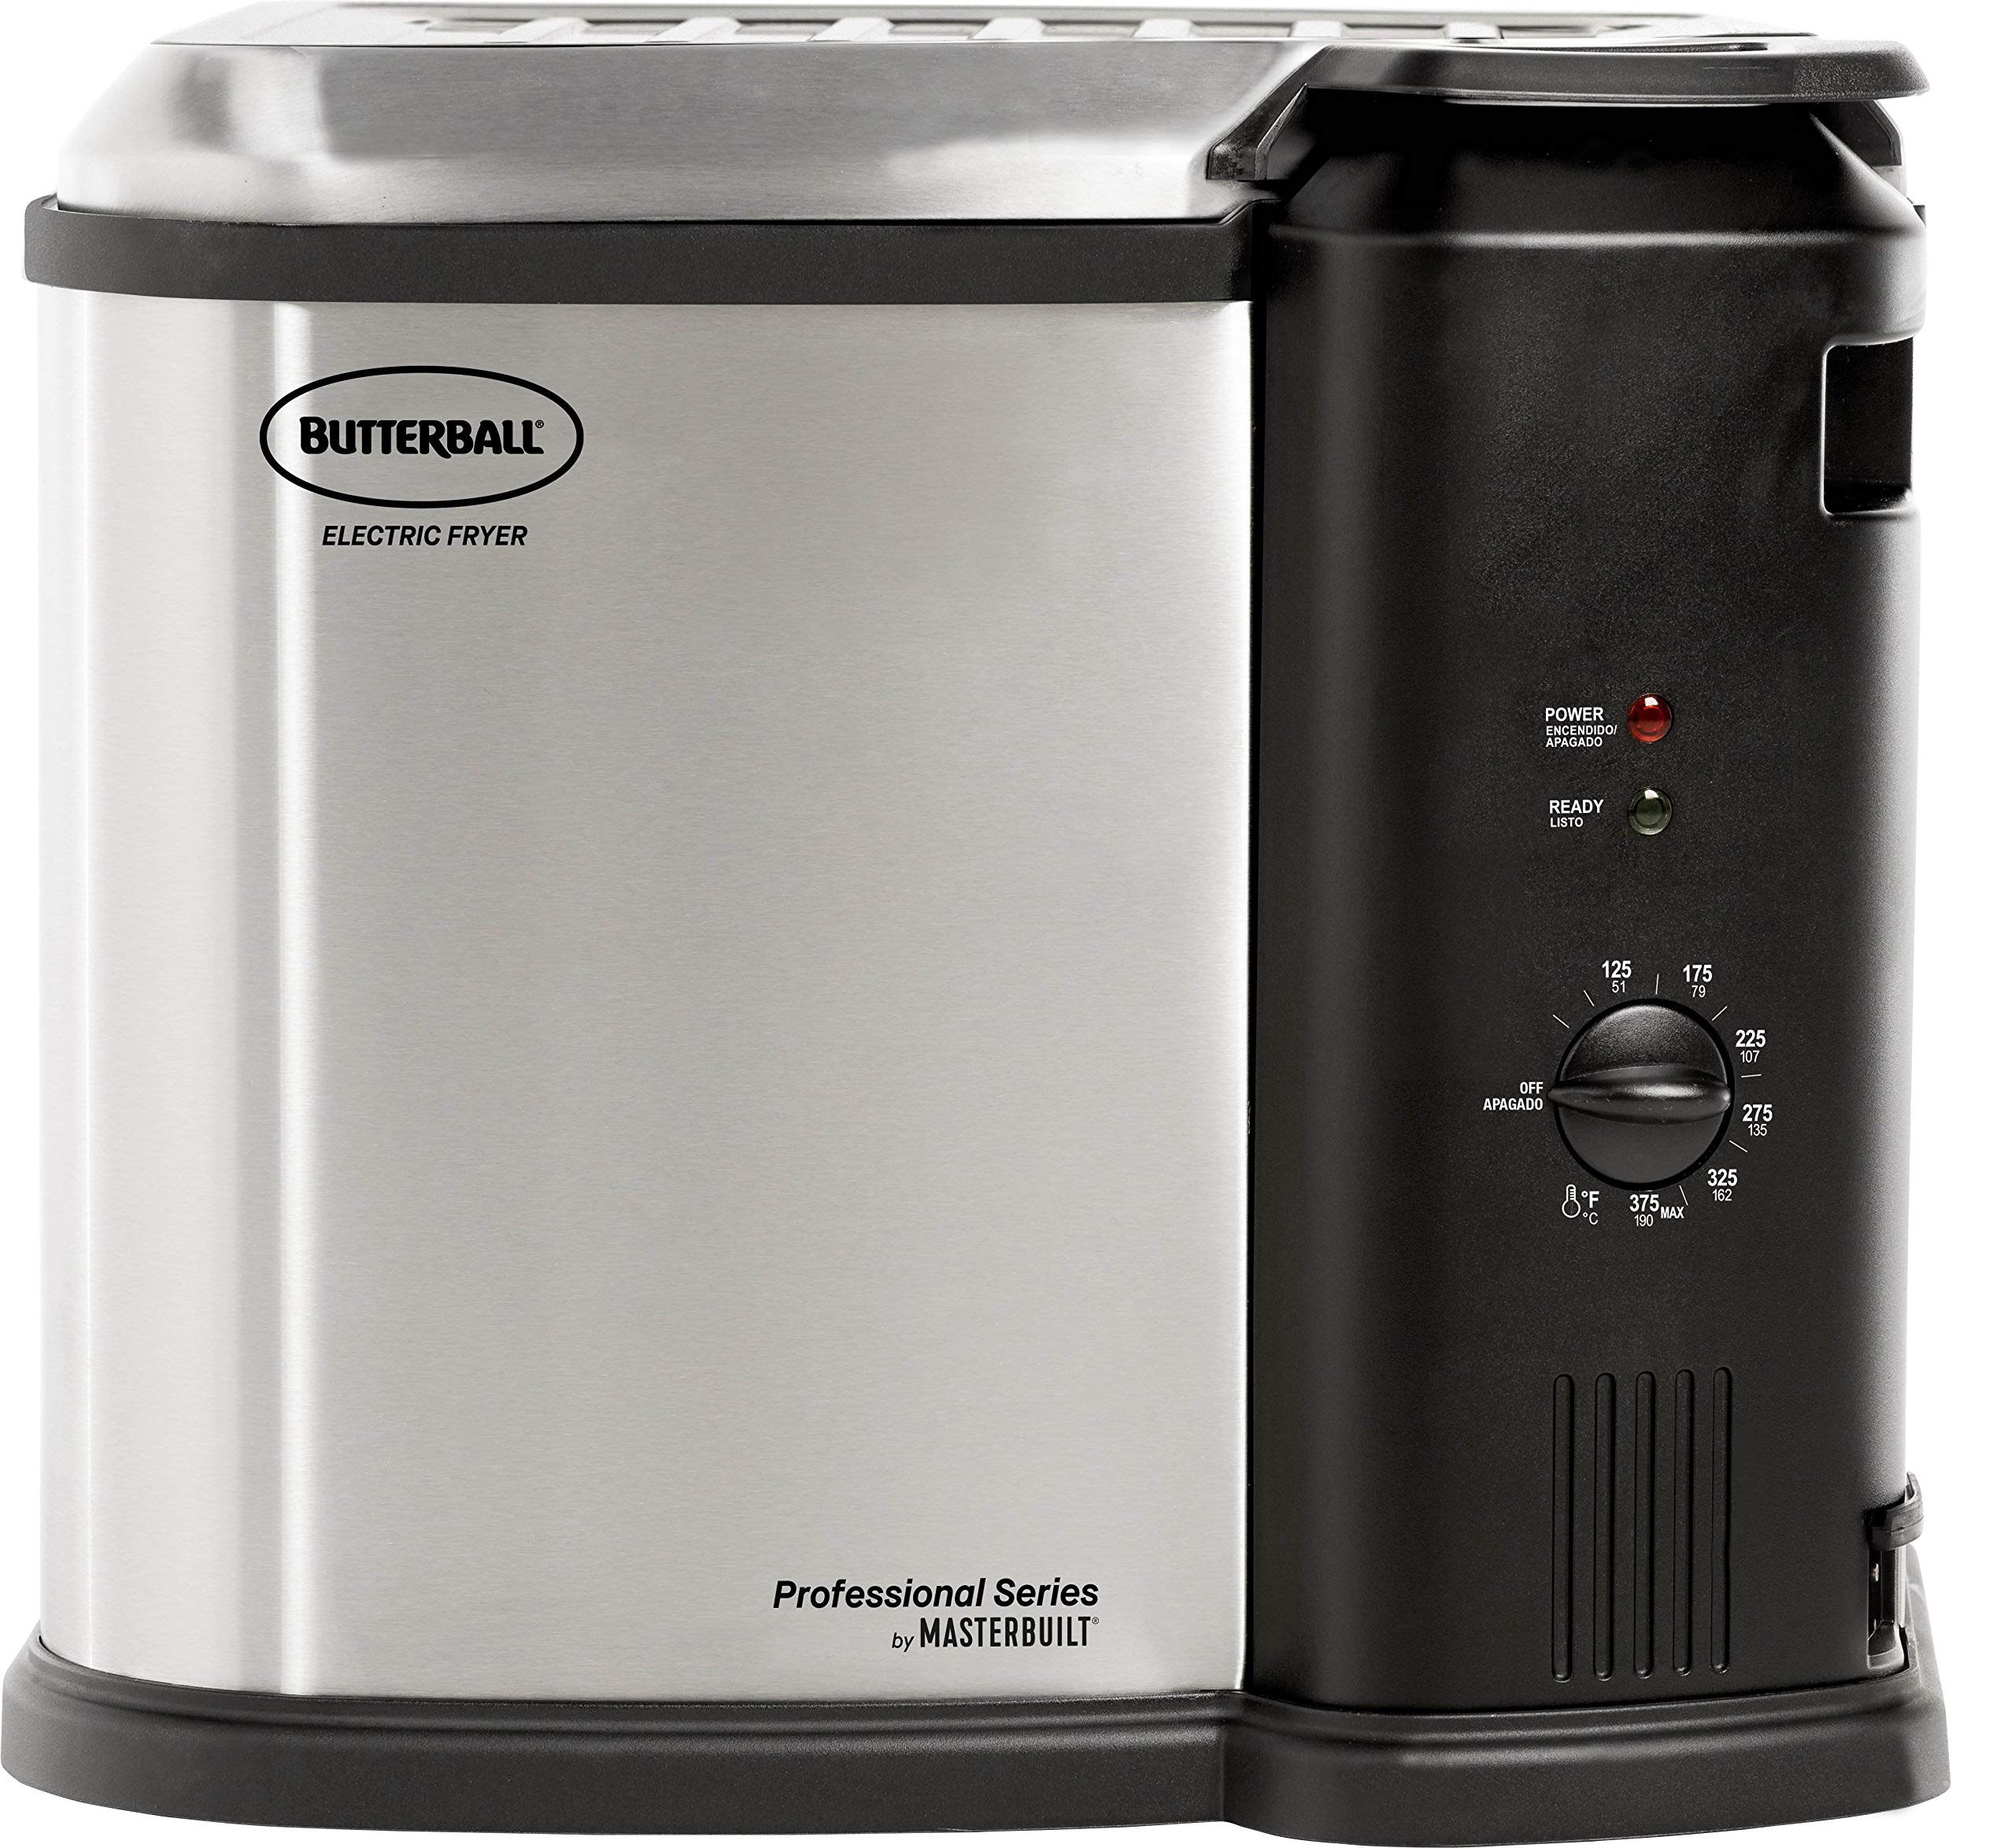 Masterbuilt MB23012418 Butterball XL Electric Fryer, Gray by Masterbuilt